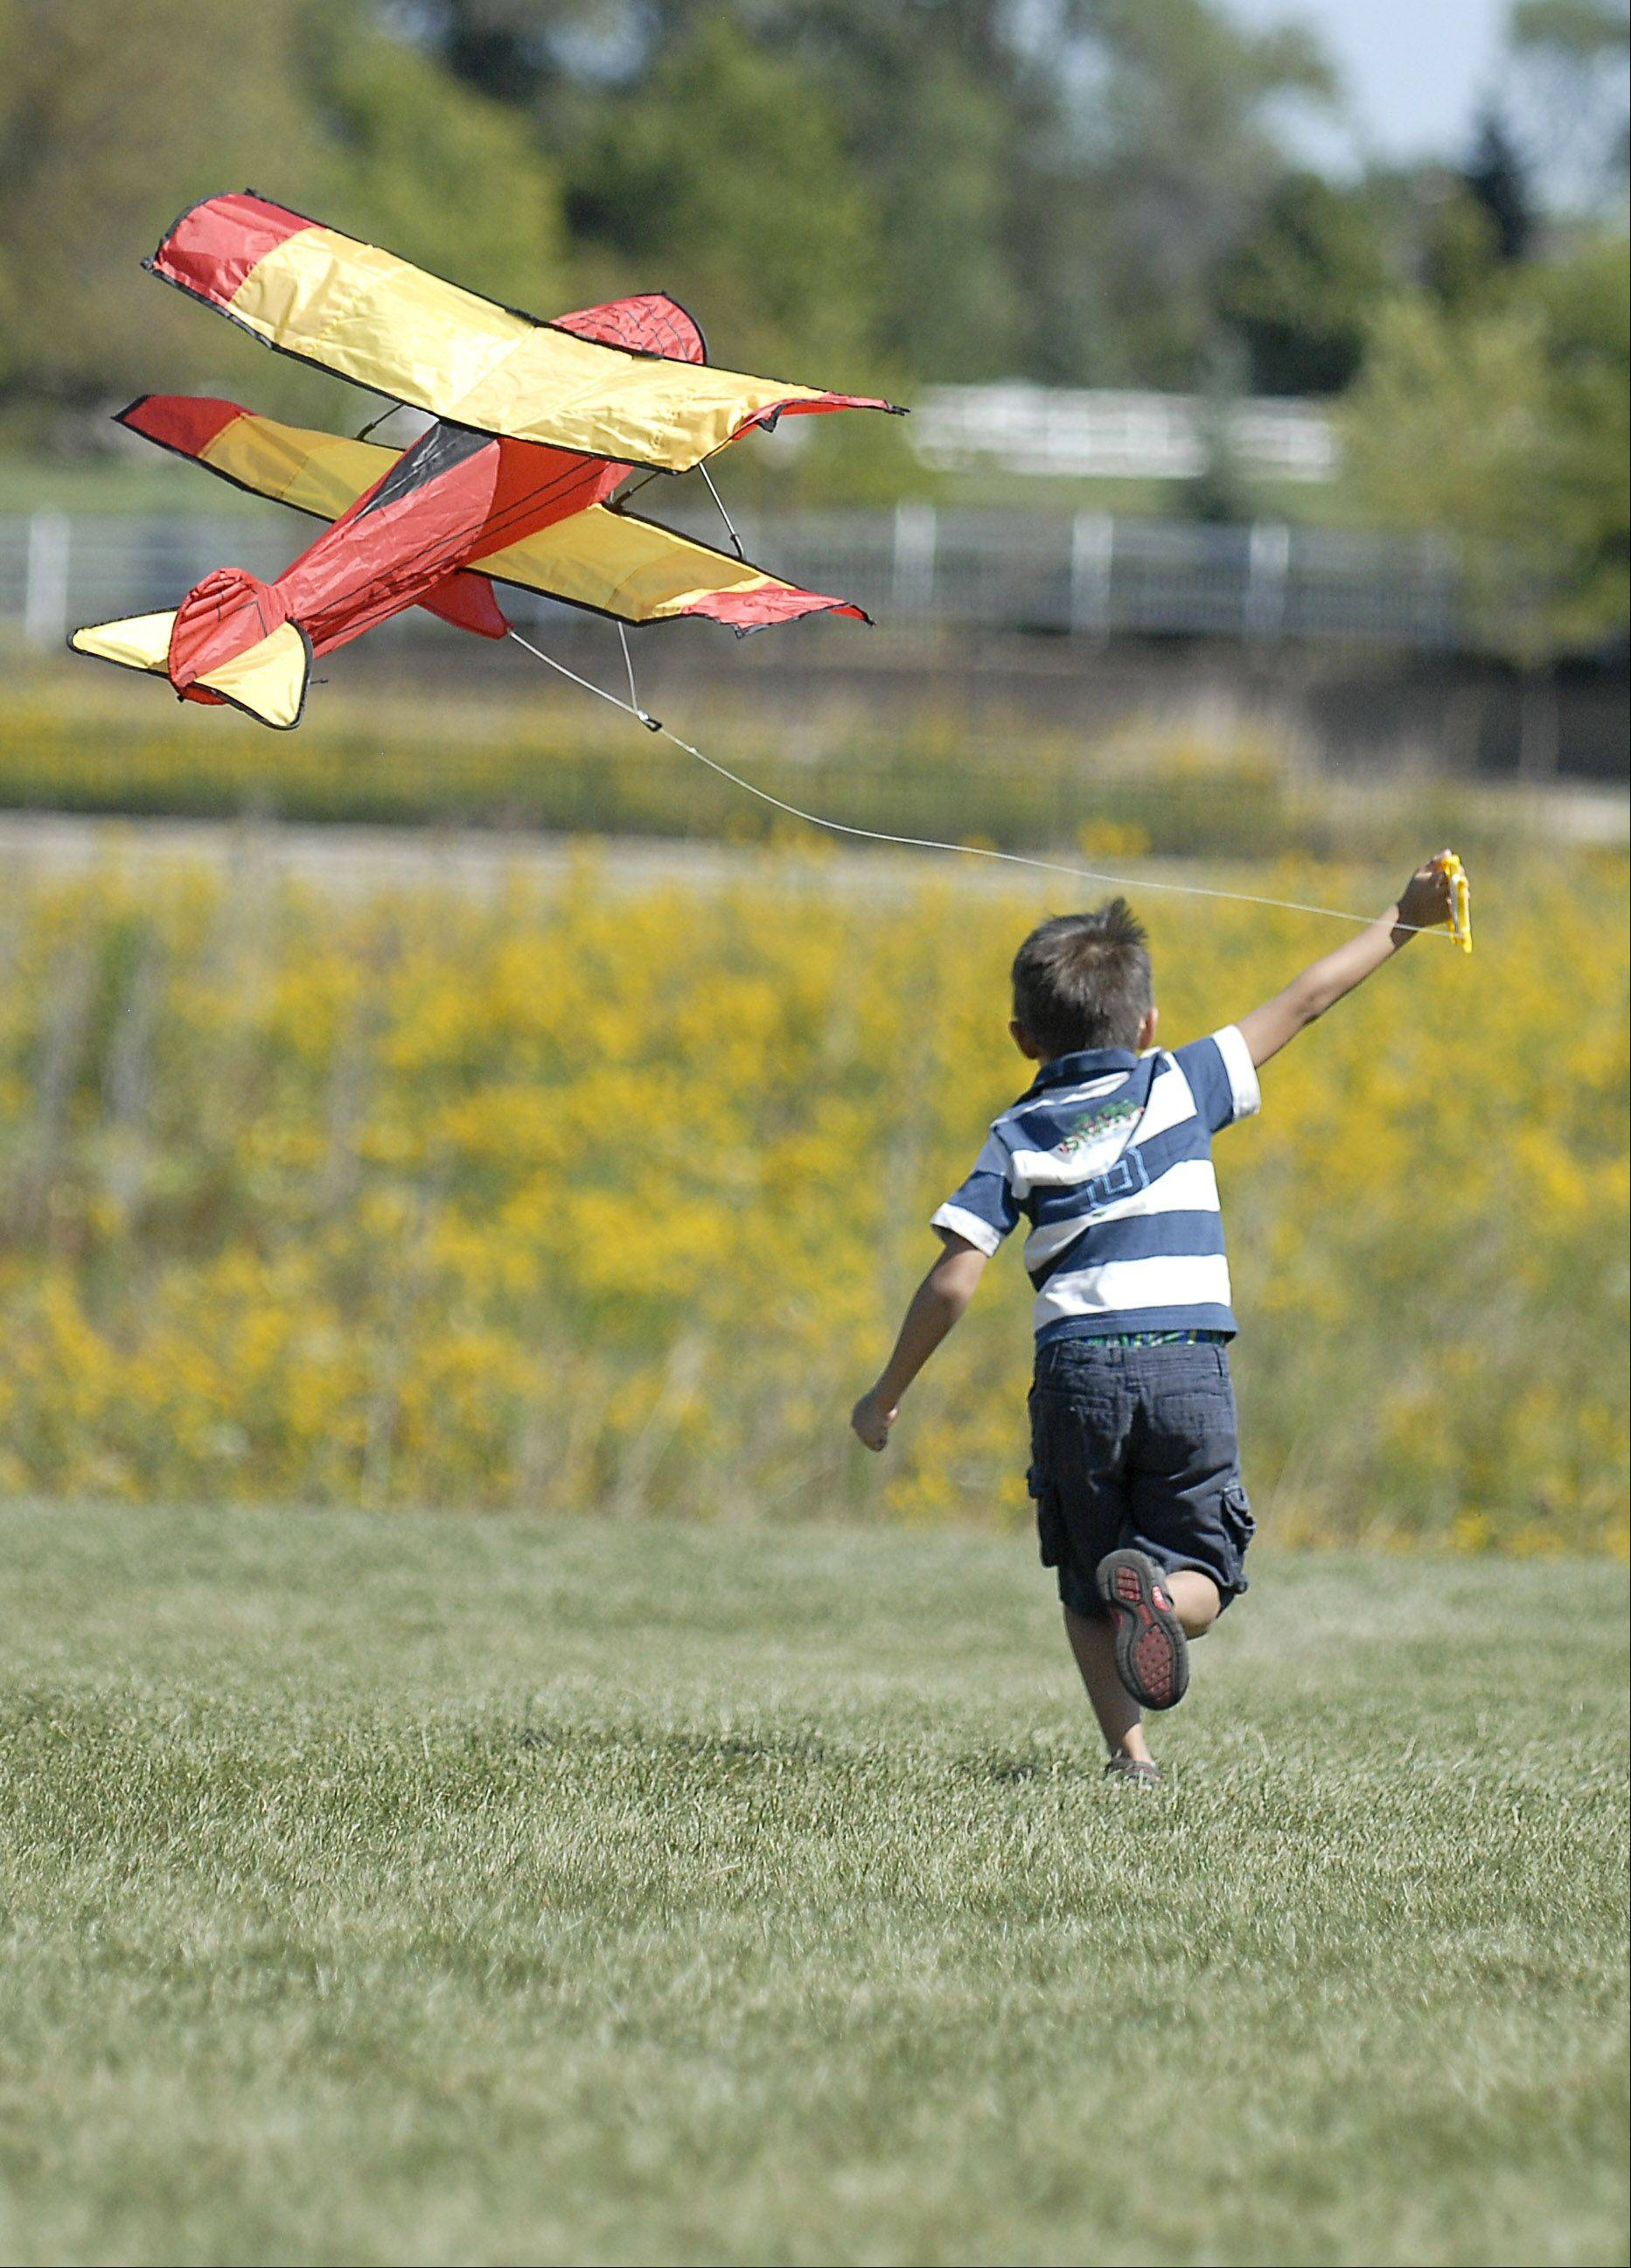 Lucas Oldham, 6, of Geneva, has lift off with his biplane kite on Saturday during Geneva Park District's Kite Festival at Peck Farm Park. Lucas attended the event with his father, Michael, and mother, Tania, for the first time.